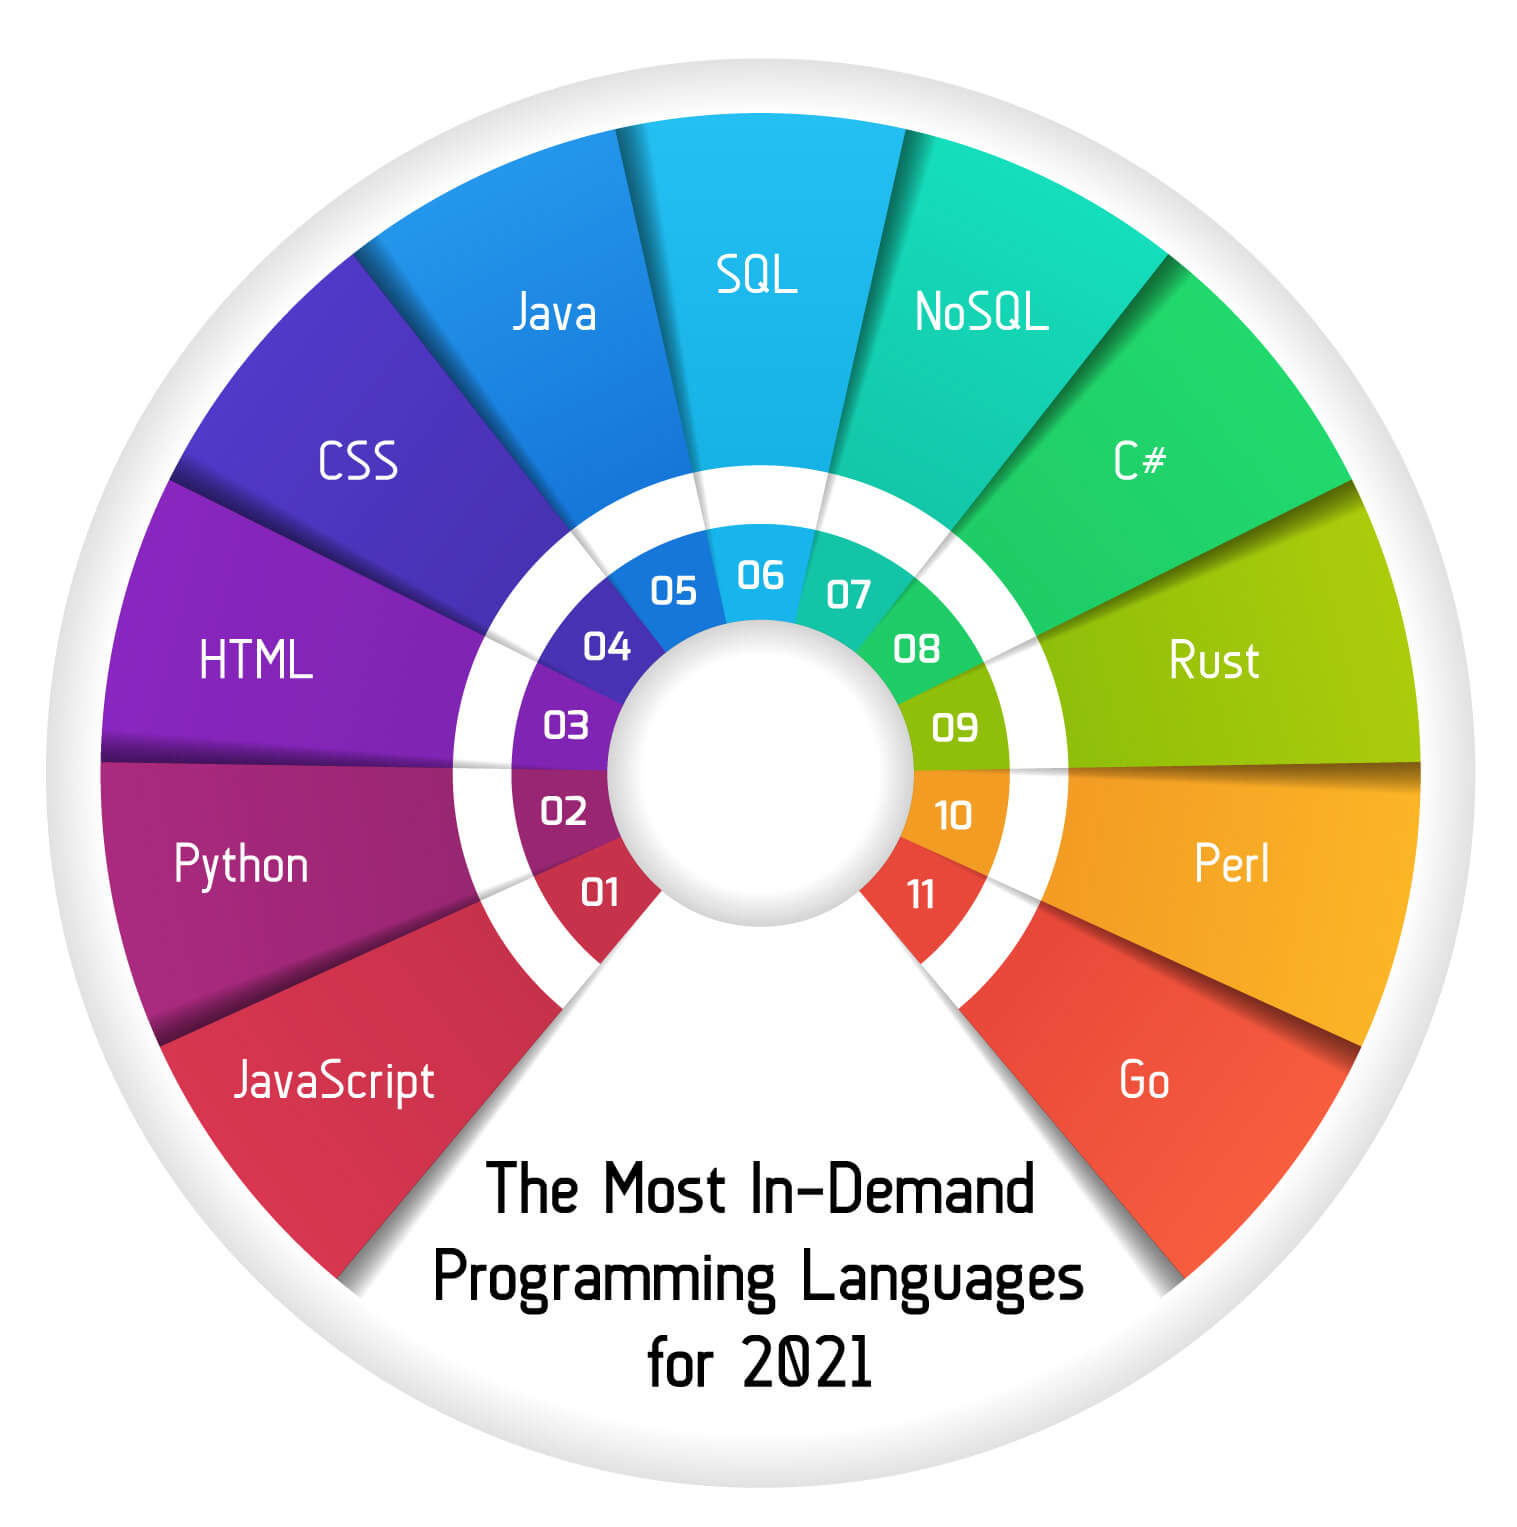 A ranking of the most in-demand programming languages in 2021